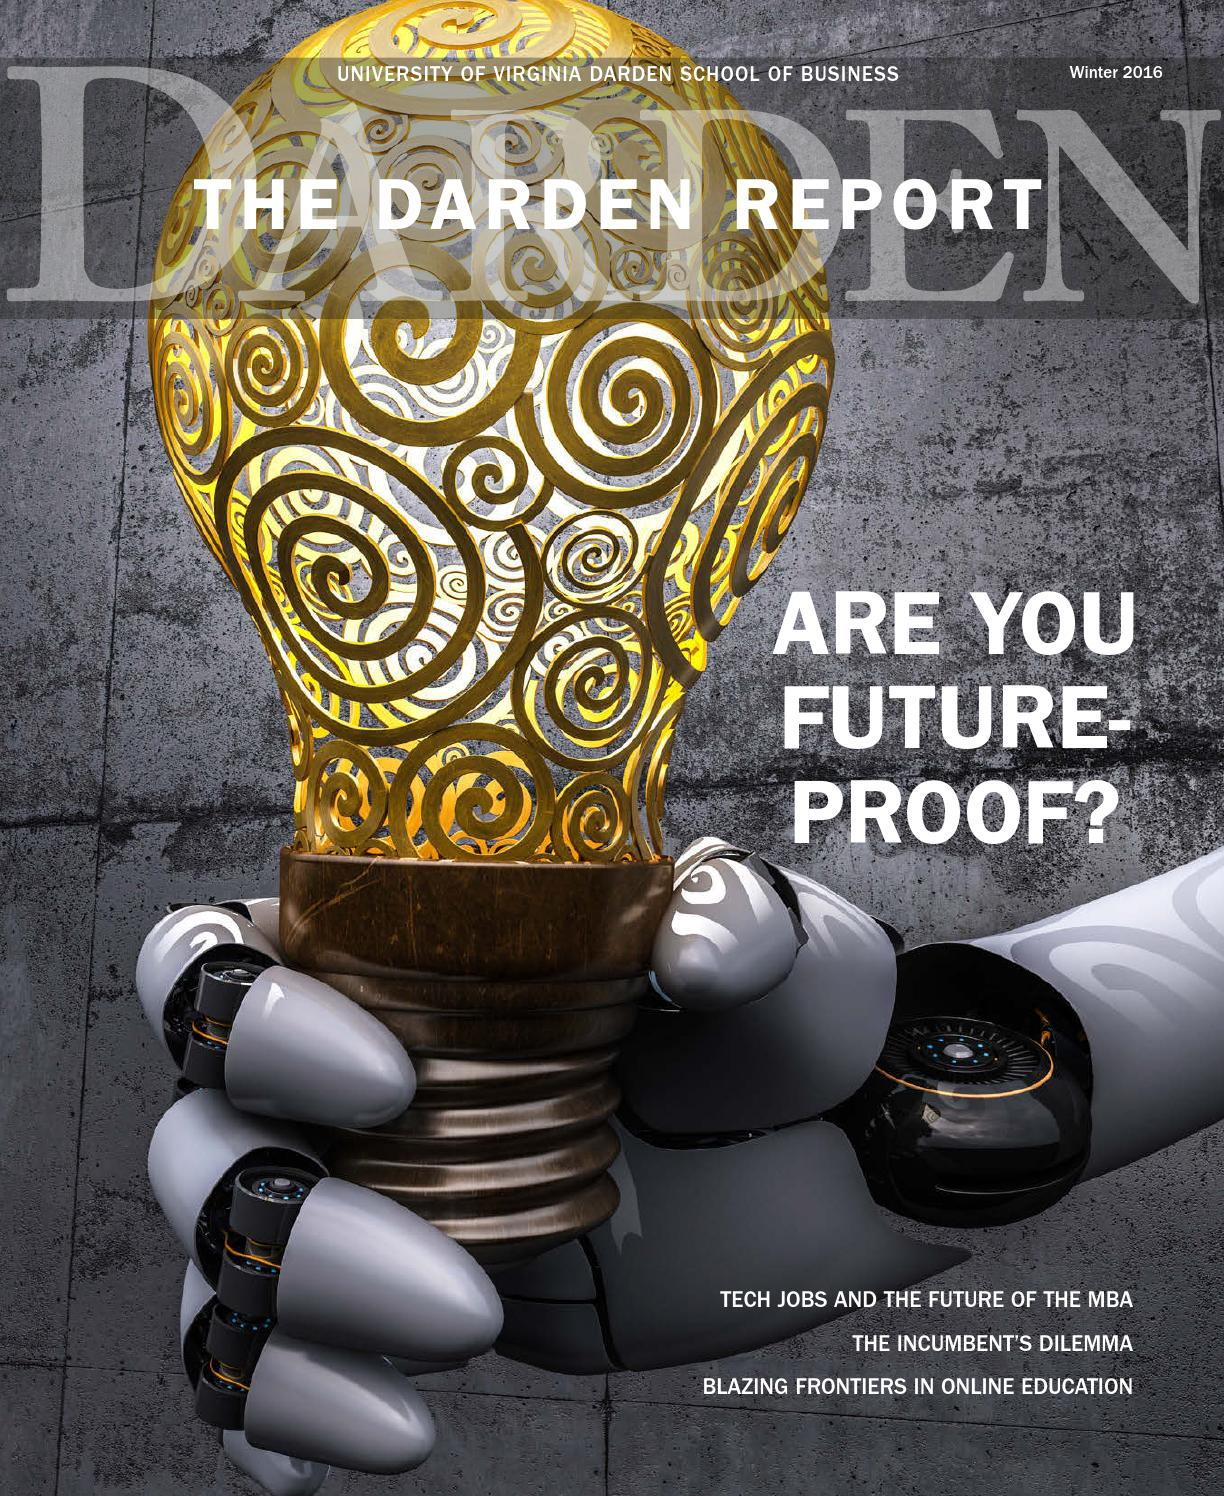 darden report 1 Published twice a year, darden's alumni magazine shares recent news and  events, explores timely business topics and profiles darden  darden report  winter 2018 cover winter 2018 darden report summer 2017  +1-434-924- 3900.